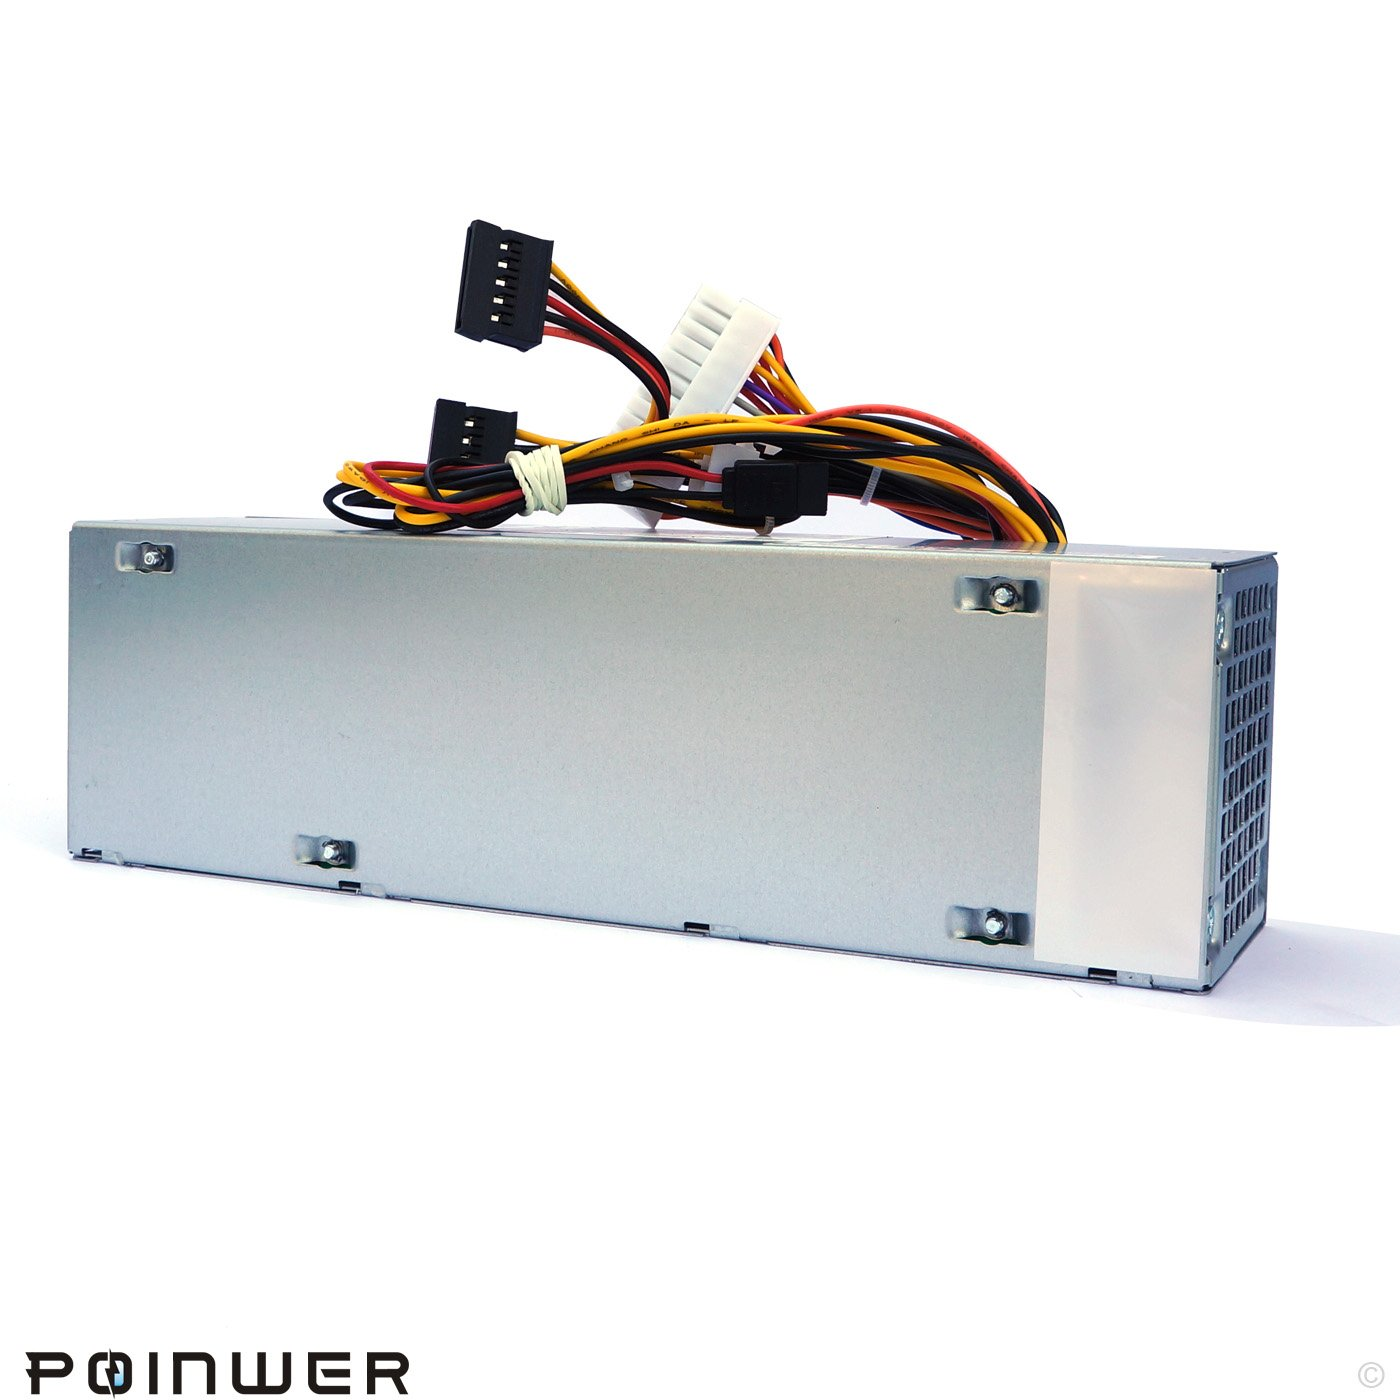 POINWER 3WN11 H240AS-00 709MT 240W Optiplex 7010 SFF Power Supply For Dell Optiplex 390 790 990 3010 9010 Small Form Factor Systems CCCVC 3RK5T 2TXYM F79TD L240AS-00 H240ES-00 D240ES-00 AC240AS-00 by POINWER (Image #5)